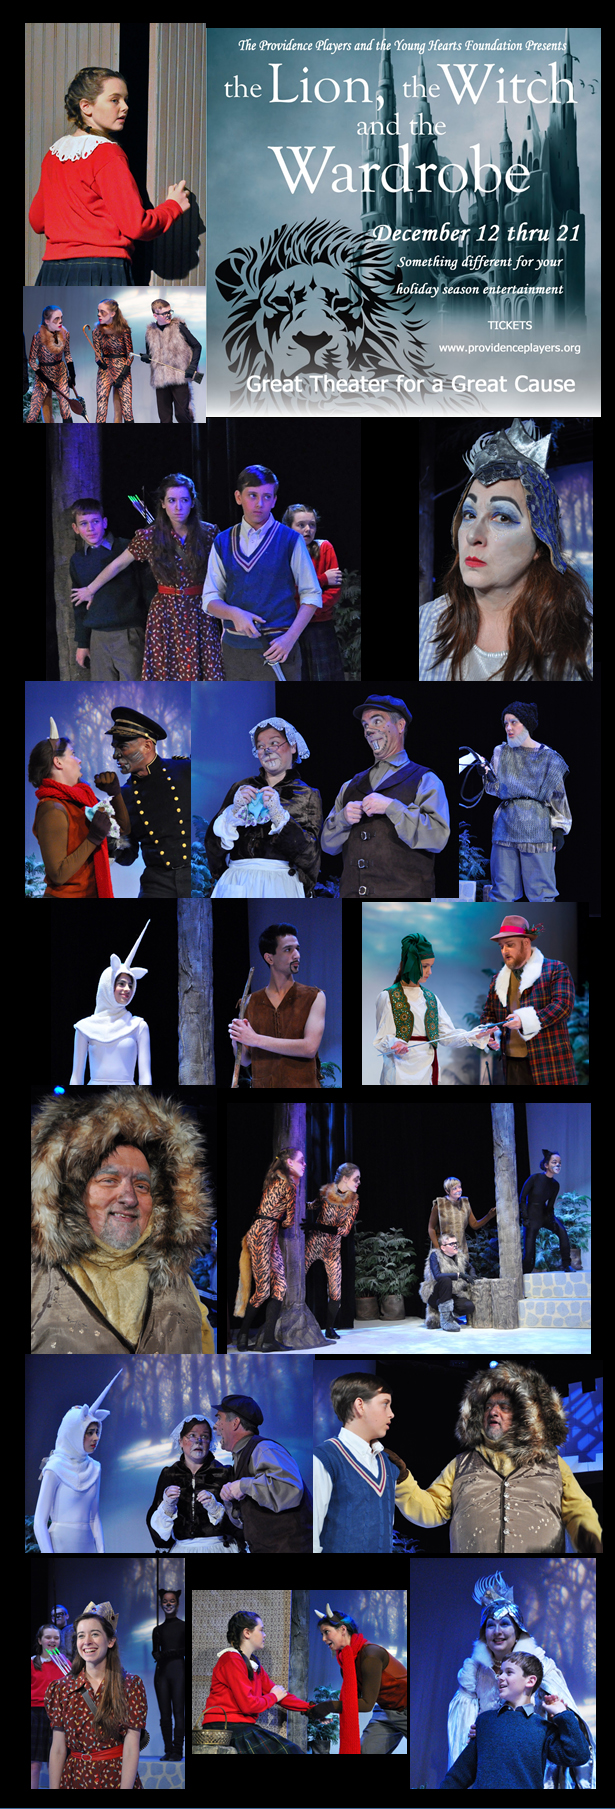 PPF Lion Witch and Wardrobe 12-8-14 Montage - Photos by Chip Gertzog and Bill Ownes